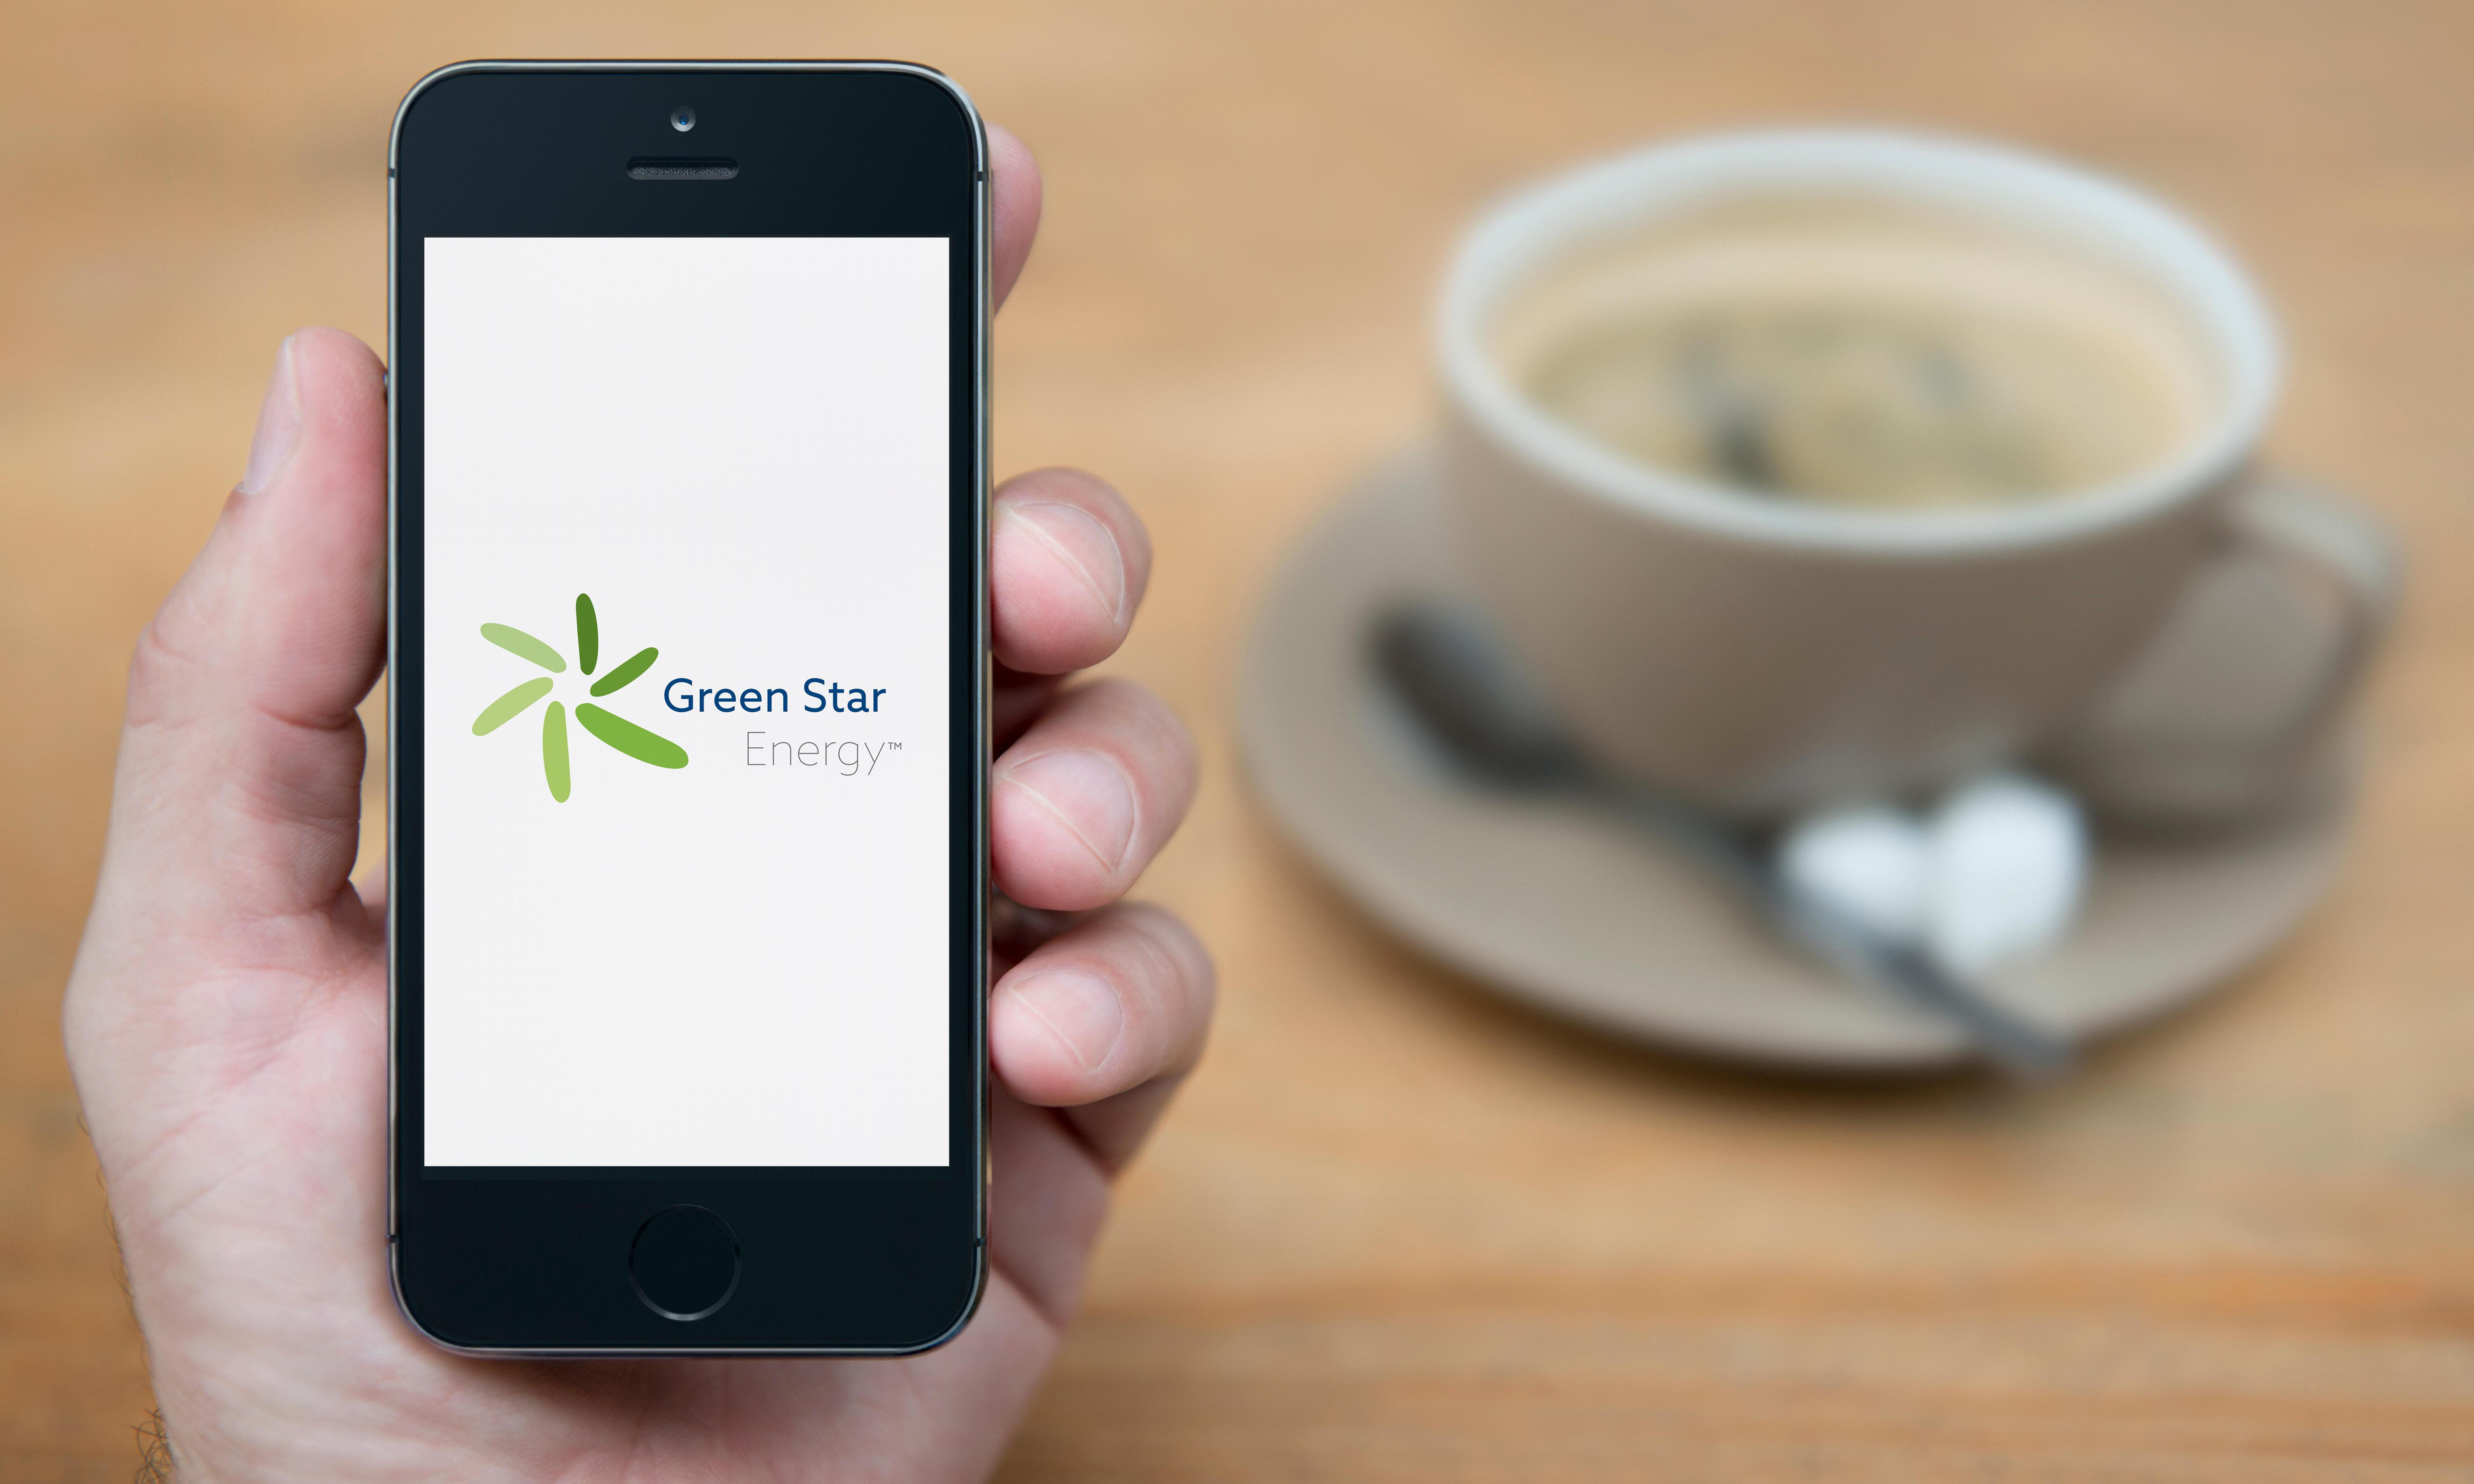 Green Star Energy won't switch off fraudulent account